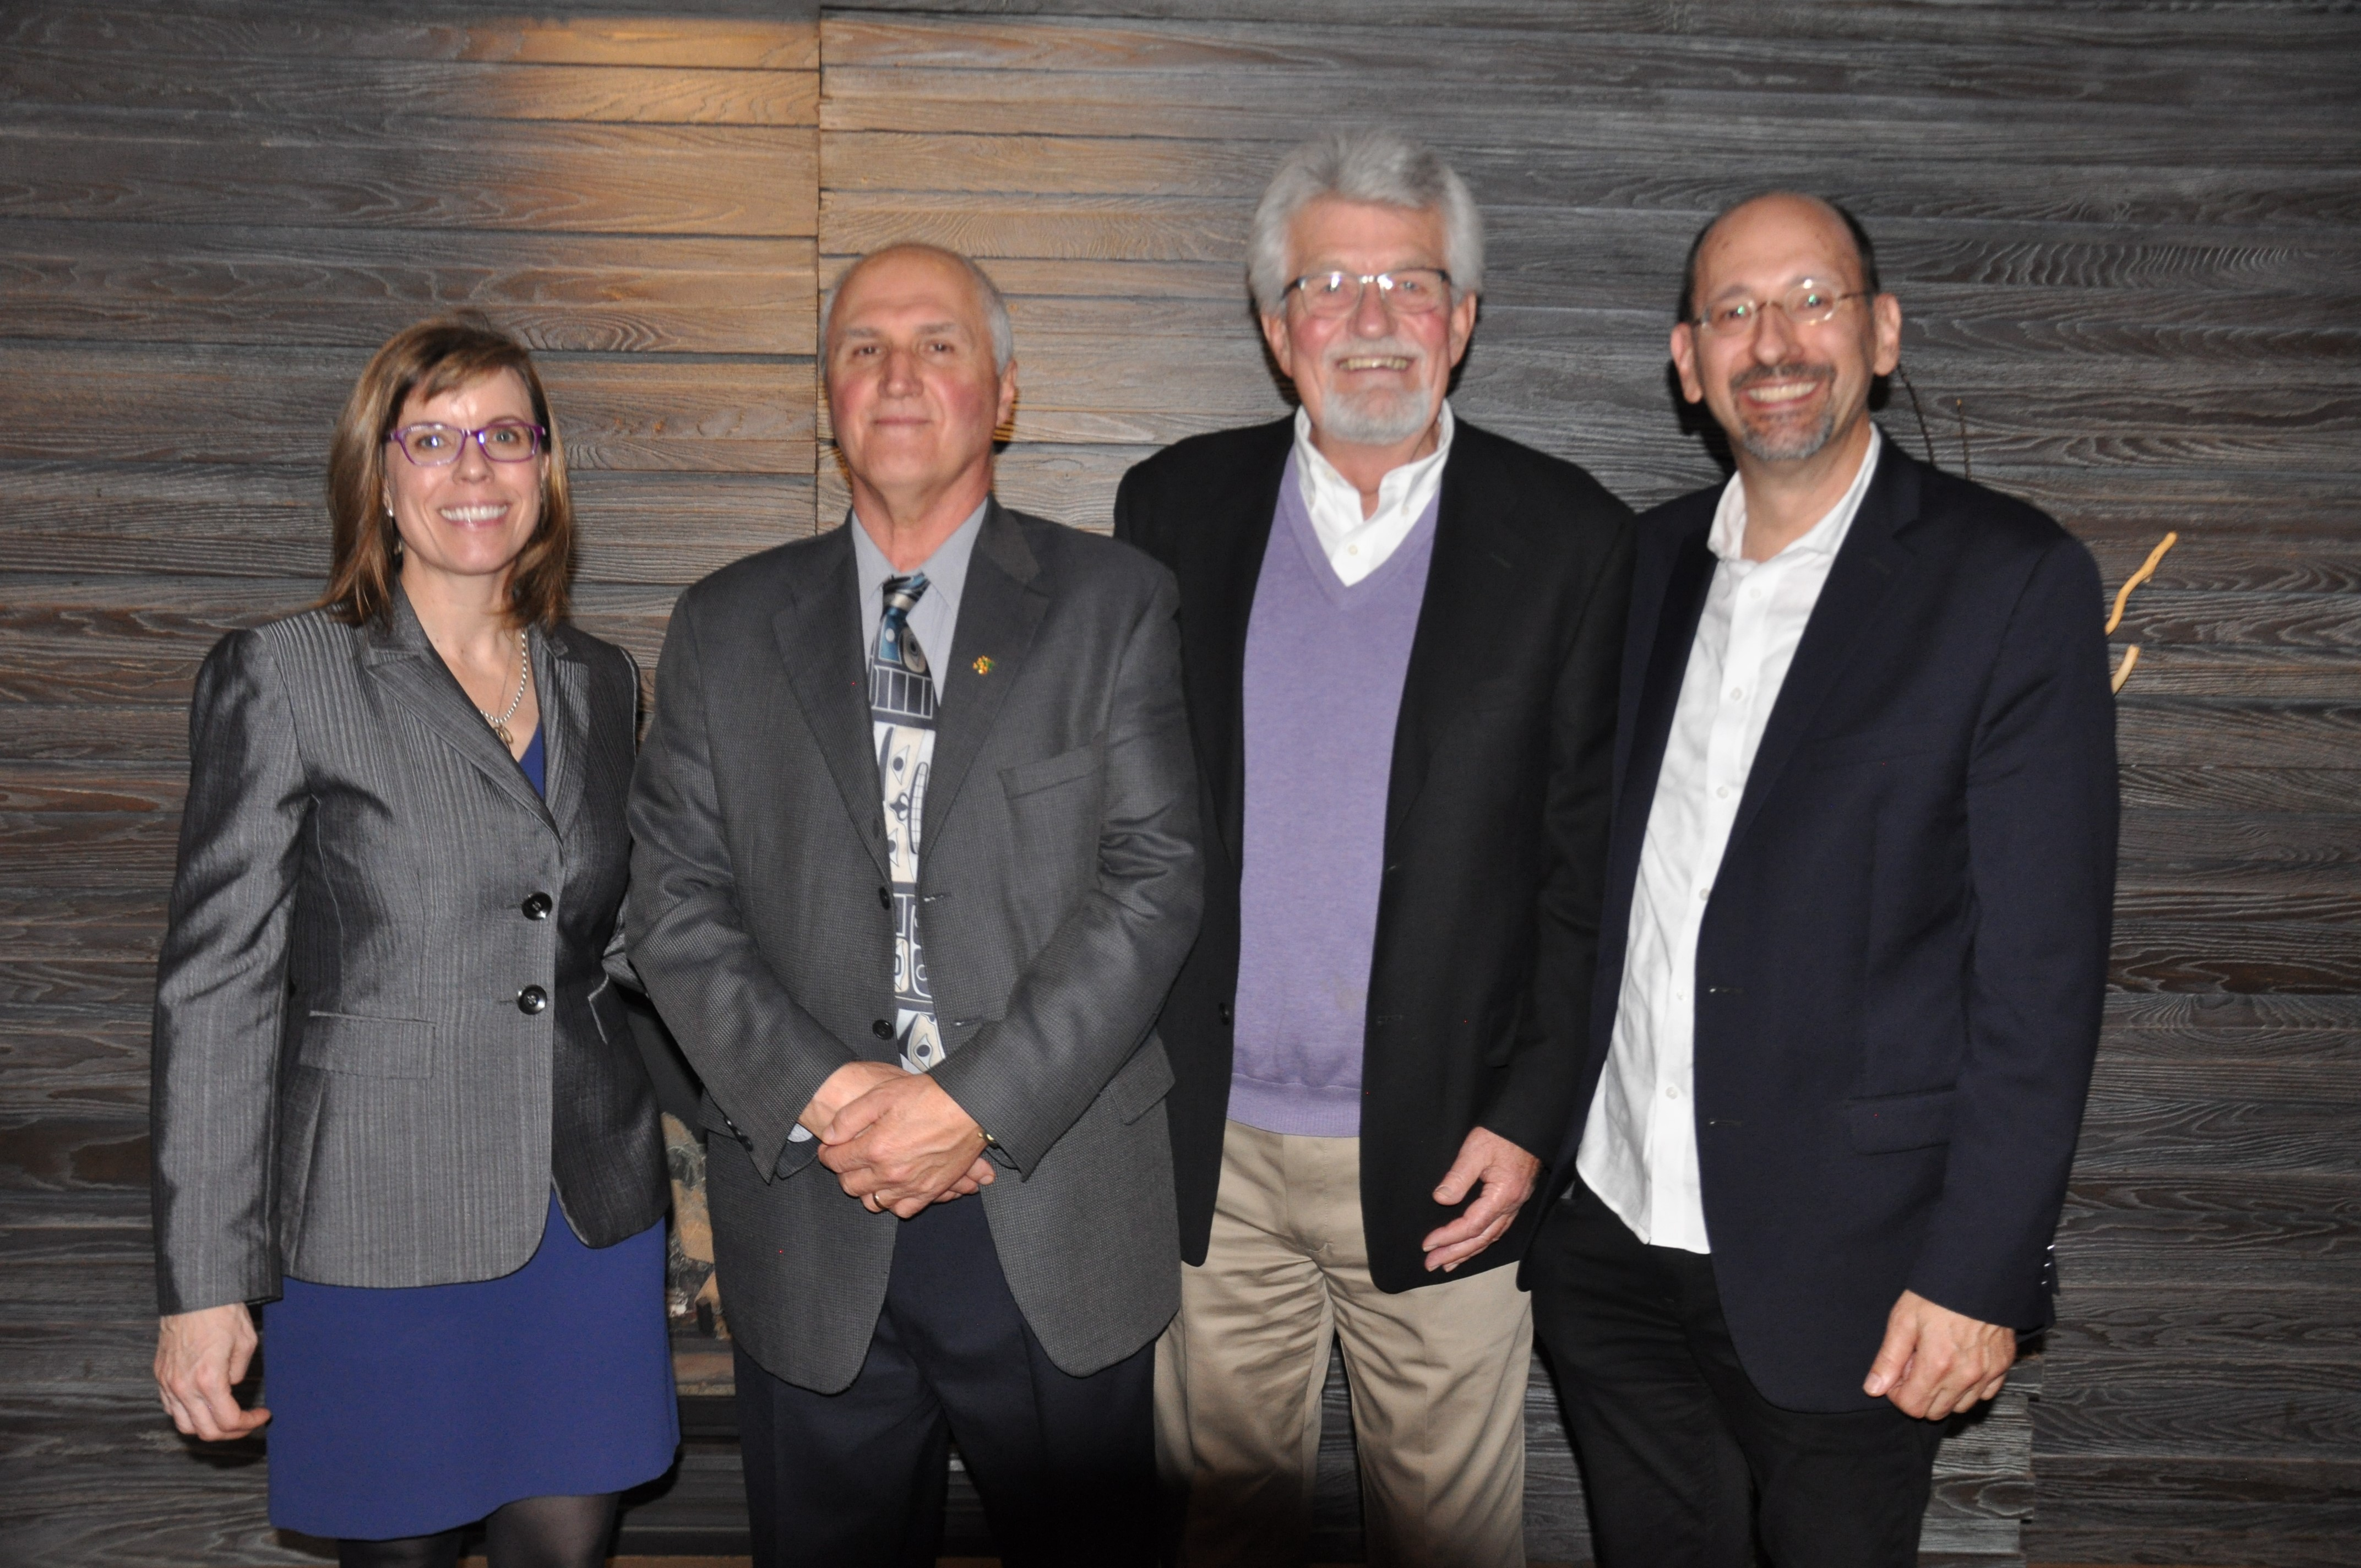 Photo of (from left to right) Marie-France Kingsley, George Myette, Ed McIsaac, and Dr. Ivan Zinger.